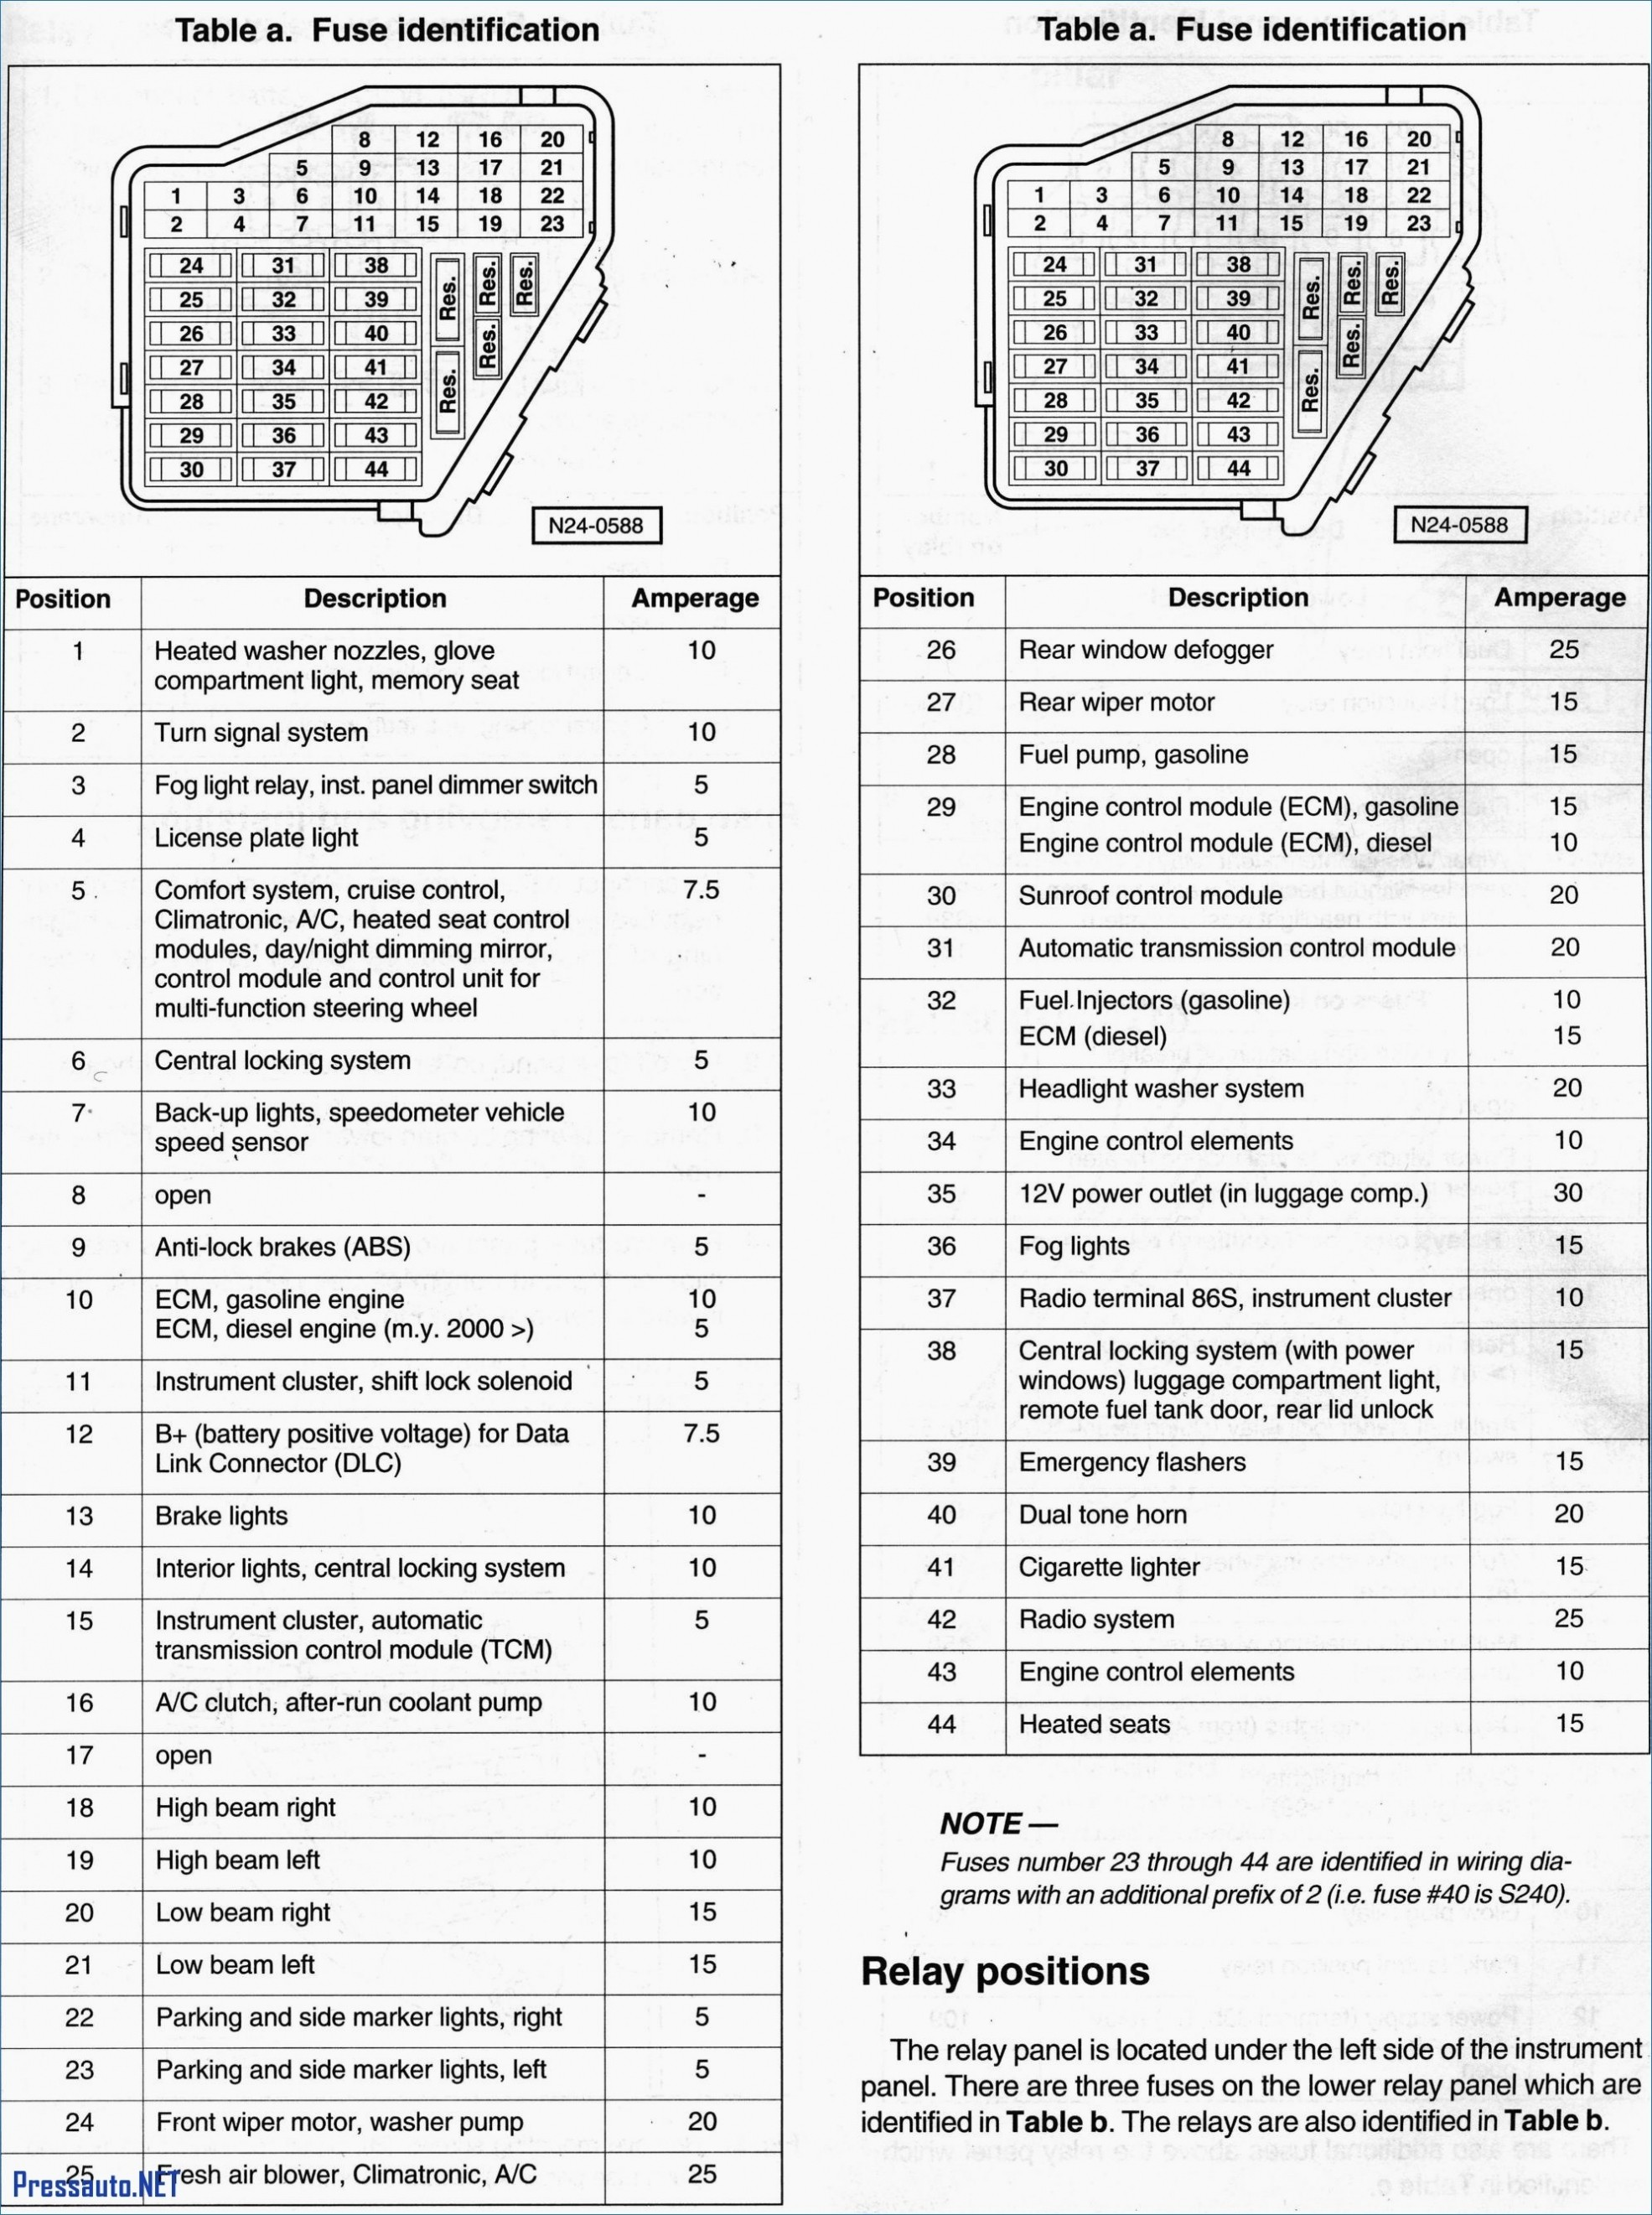 Audi A4 Quattro Fuse Diagram - Wiring Diagram Data stem-activity -  stem-activity.portorhoca.it | Audi Fuse Diagram |  | stem-activity.portorhoca.it